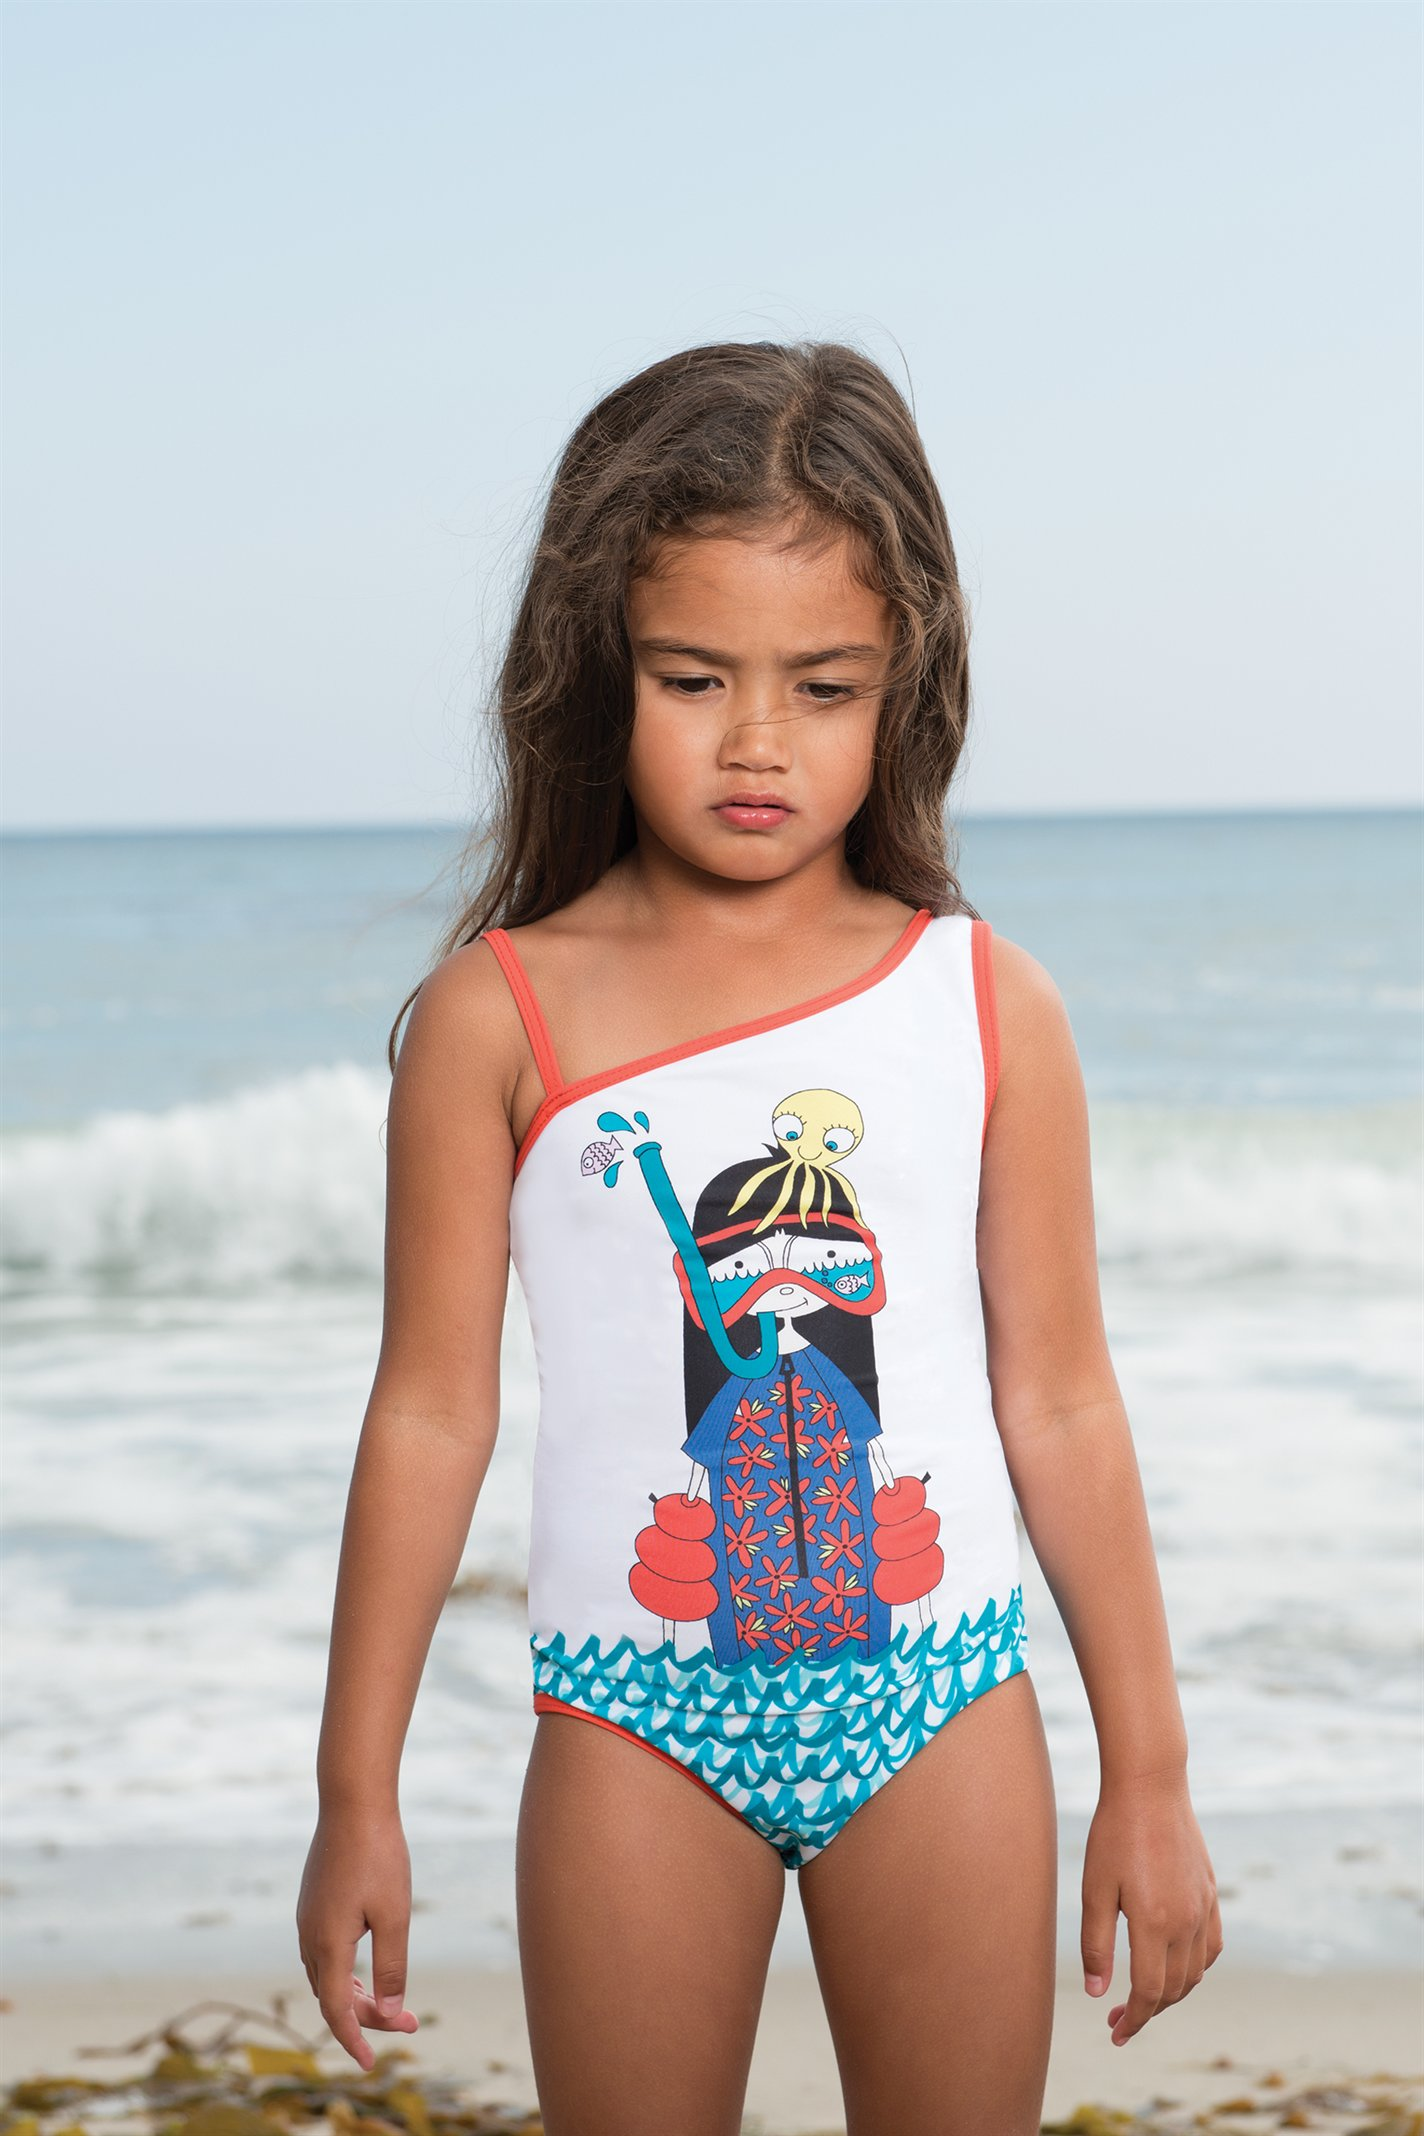 Buy kids swimwear at free-cabinetfile-downloaded.ga! We have bathing suits, rash guards, board shorts, tankinis & more for the boy, girl, toddler or baby in your life.